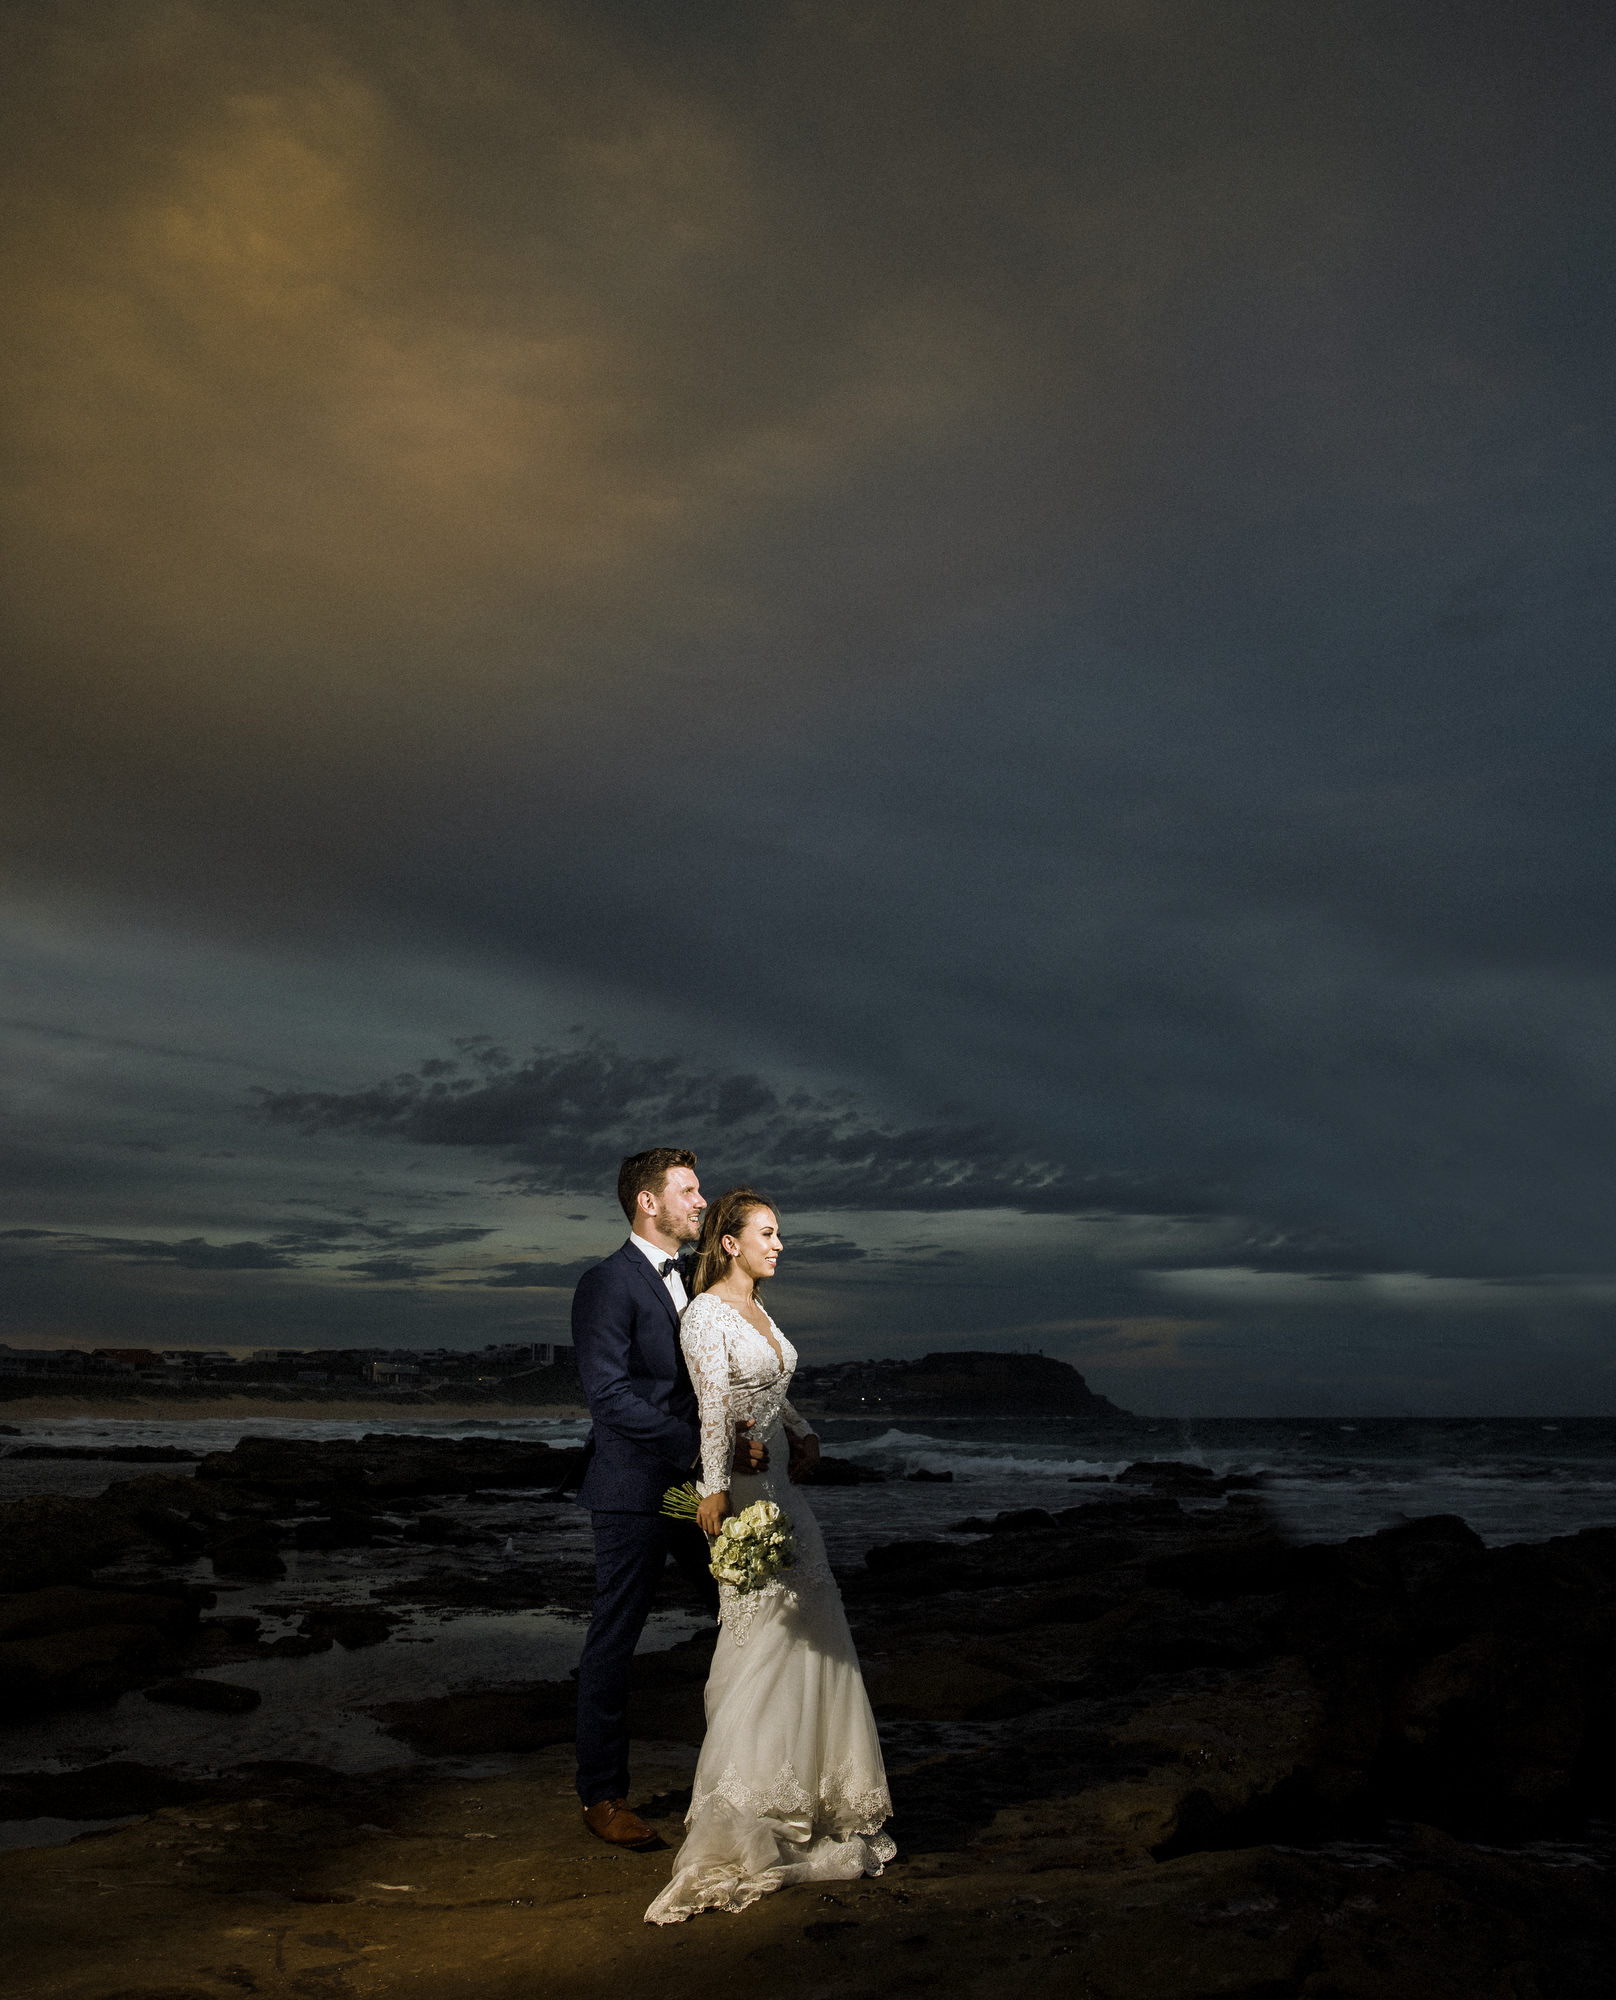 Rach & Nik - Merewether Surf club